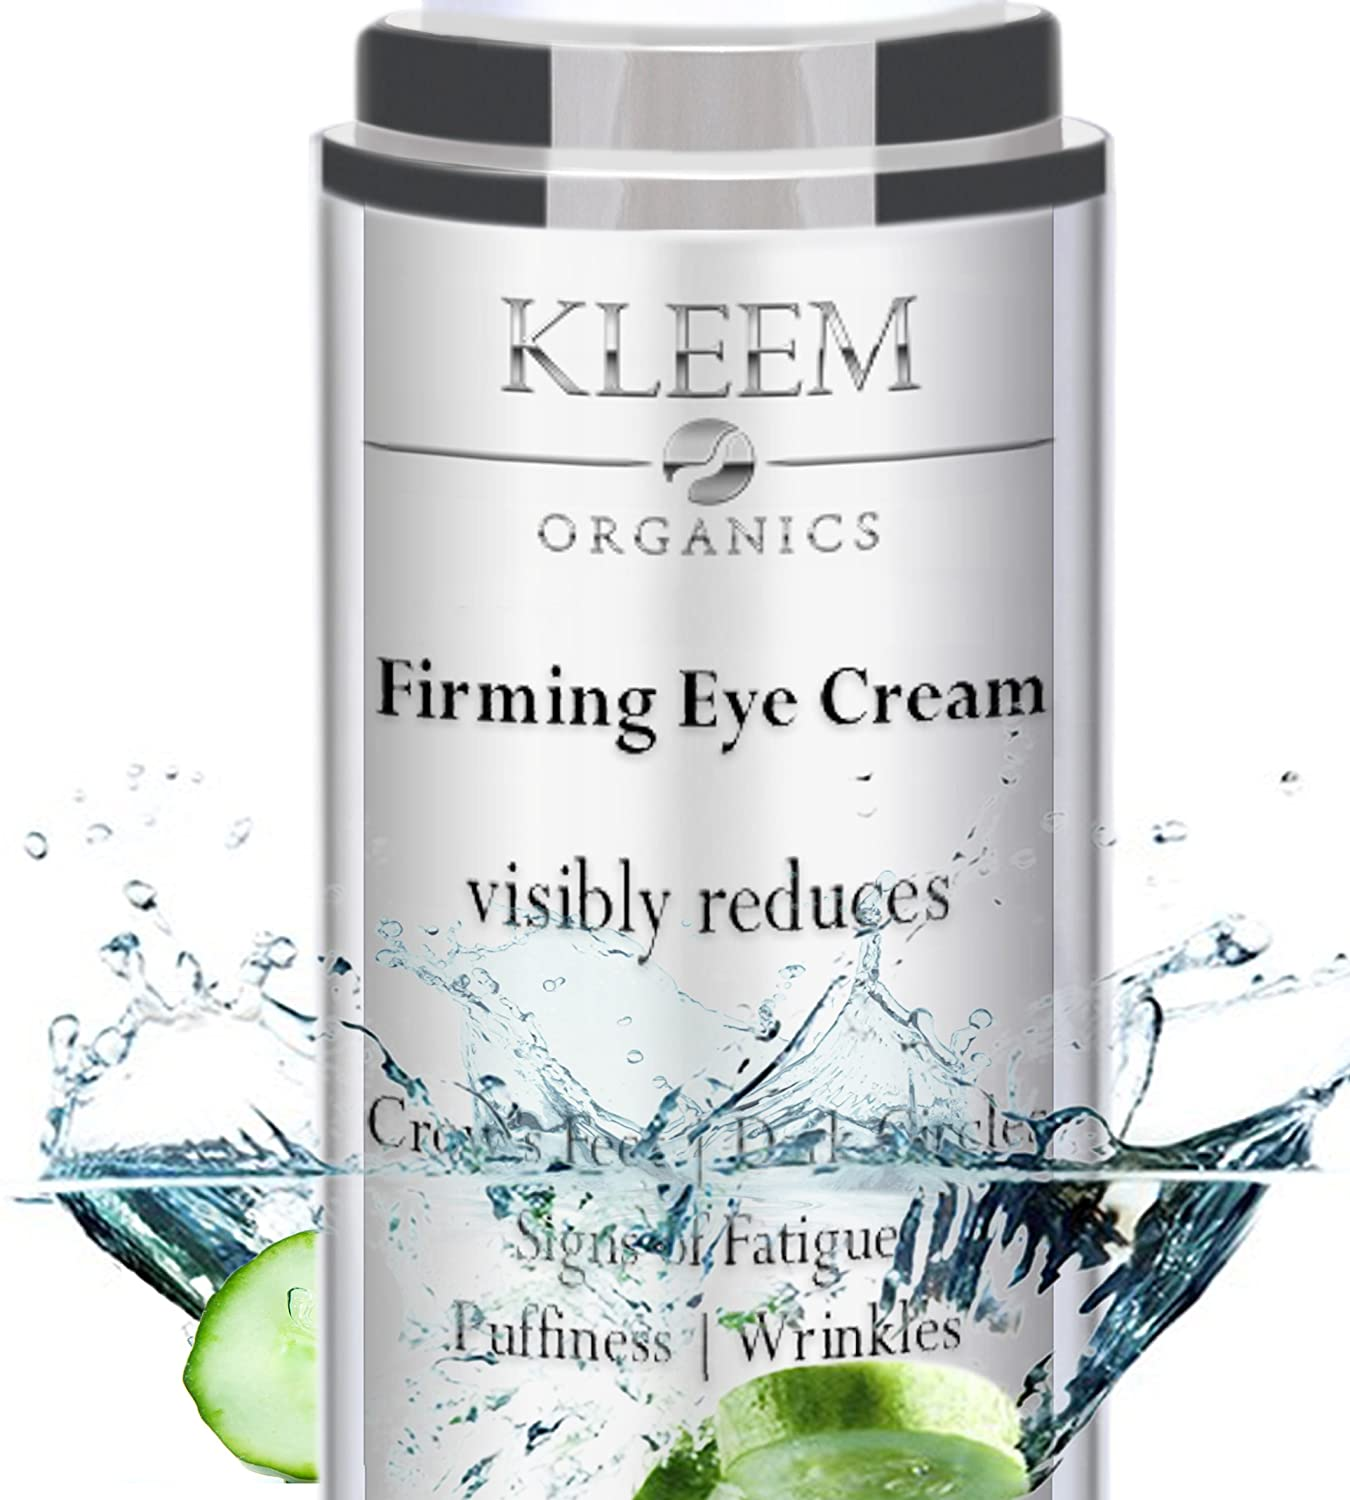 Anti Aging Eye Cream for Dark Circles and Puffiness by Kleem Organics